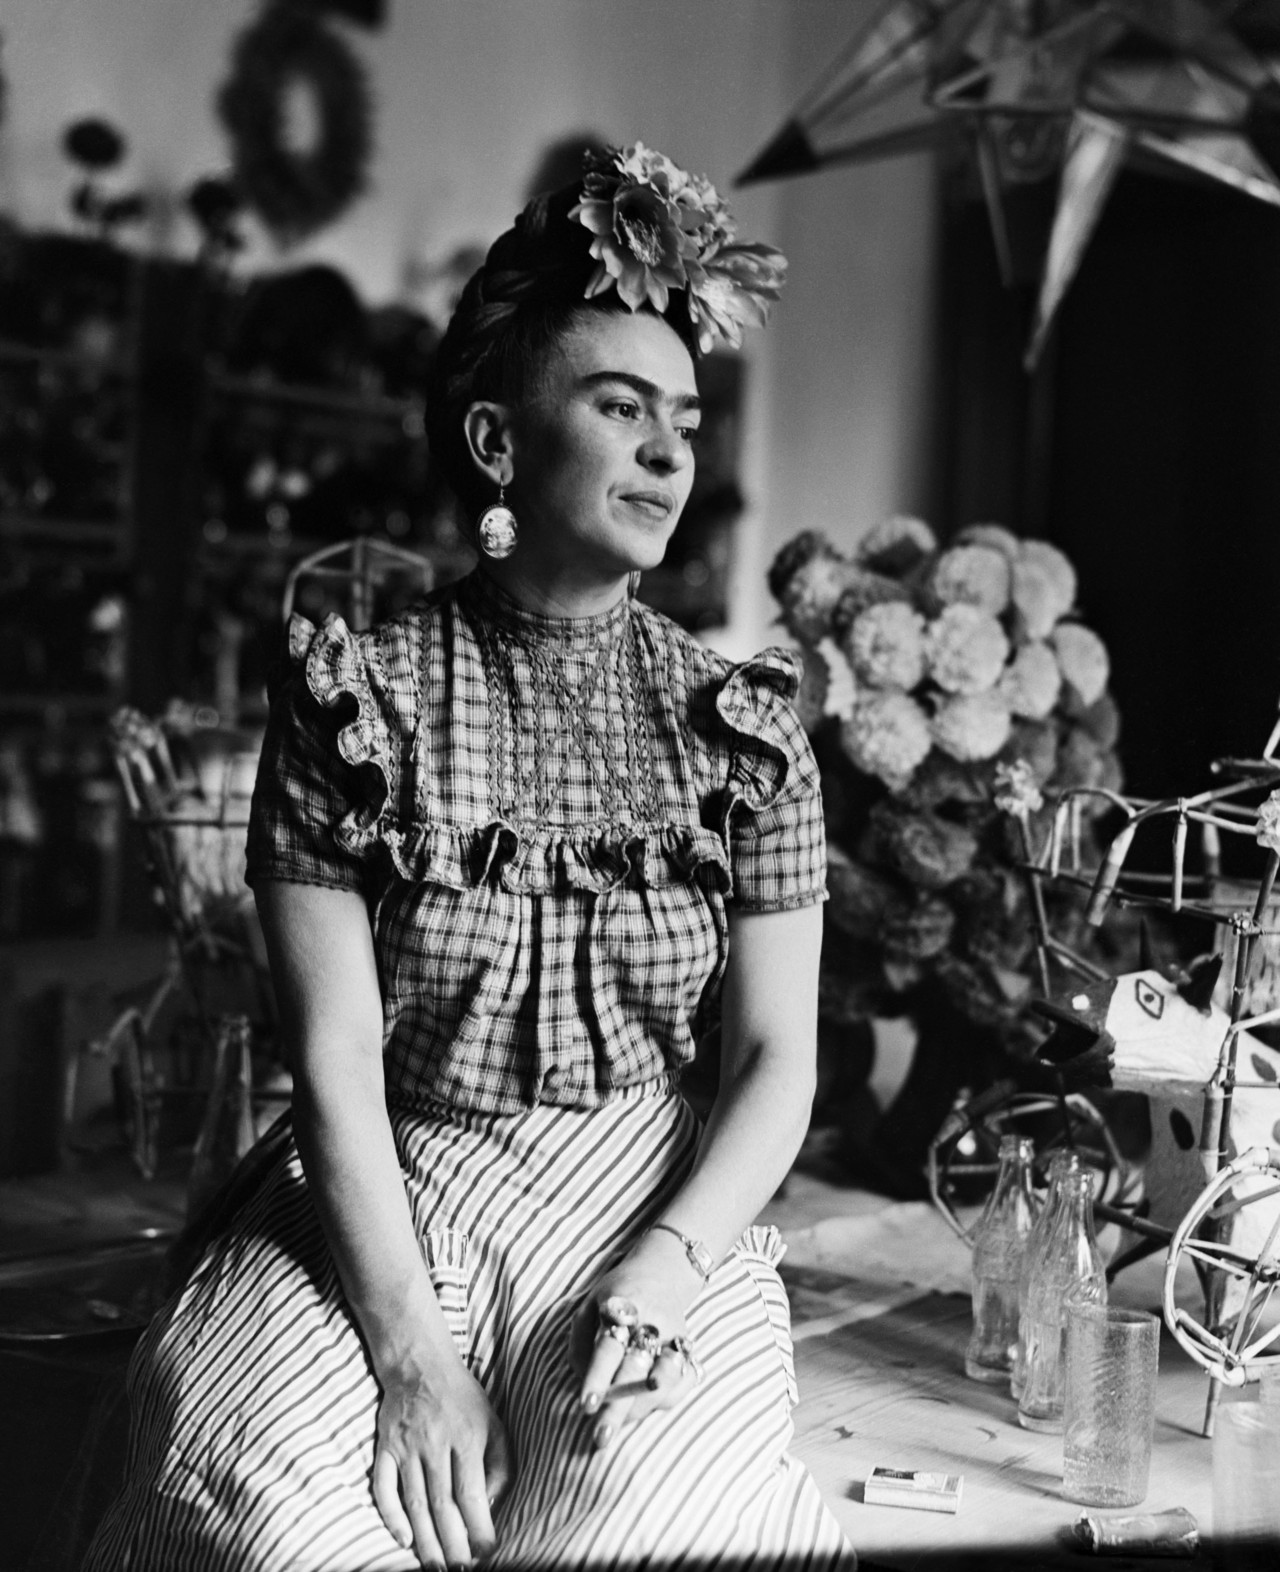 Original Caption: 1944: Photograph of Frida Kahlo (1910-1954), Mexican painter and wife of Diego Rivera.